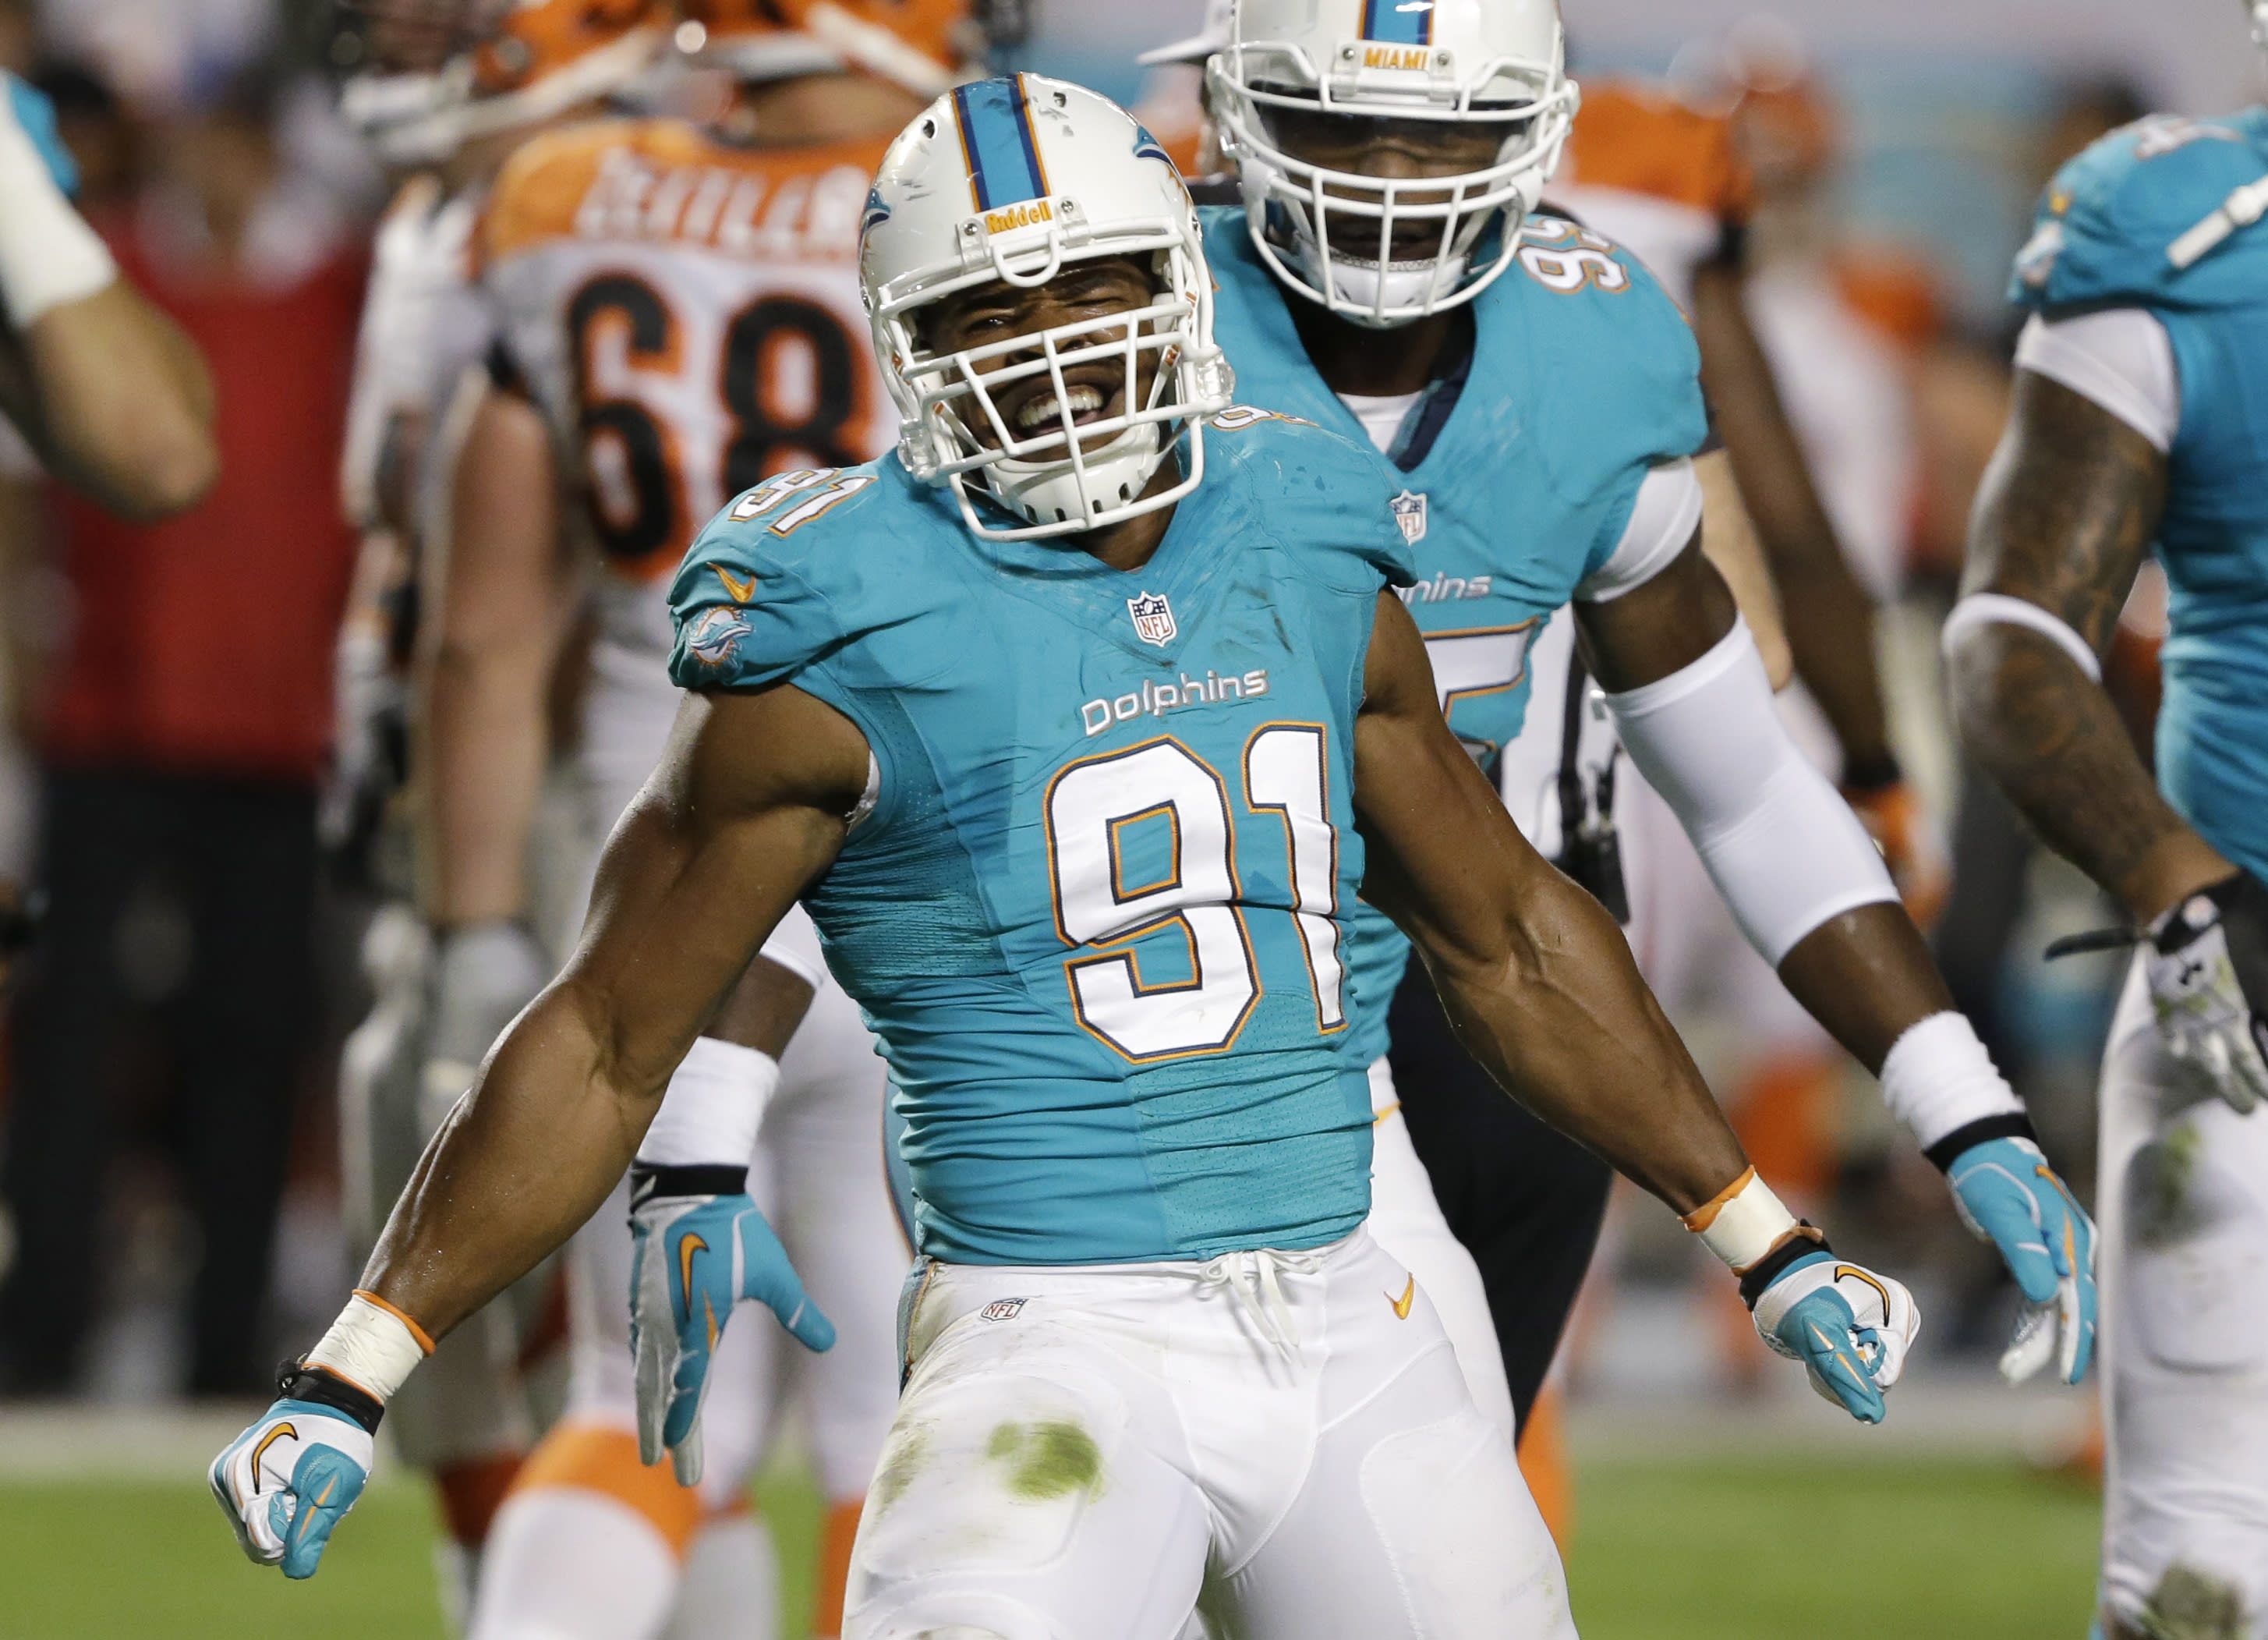 Dolphins lead Bengals 10 3 at halftime